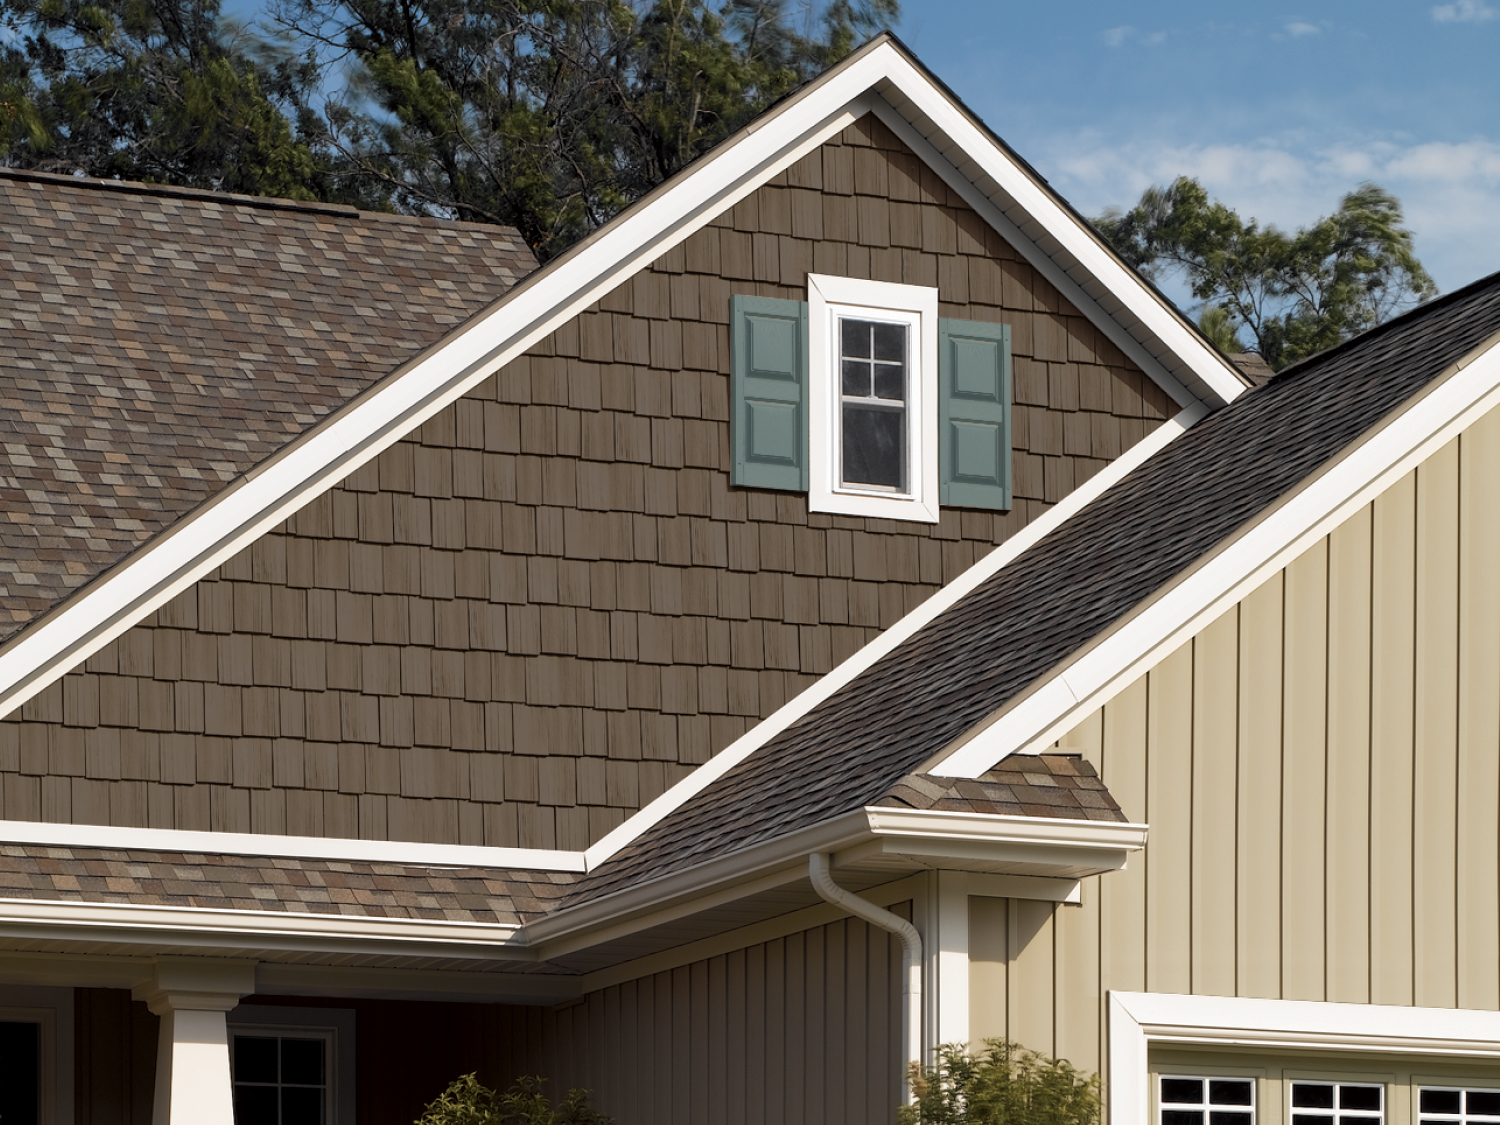 The Different Looks Of Vinyl Siding Pj Fitzpatrick